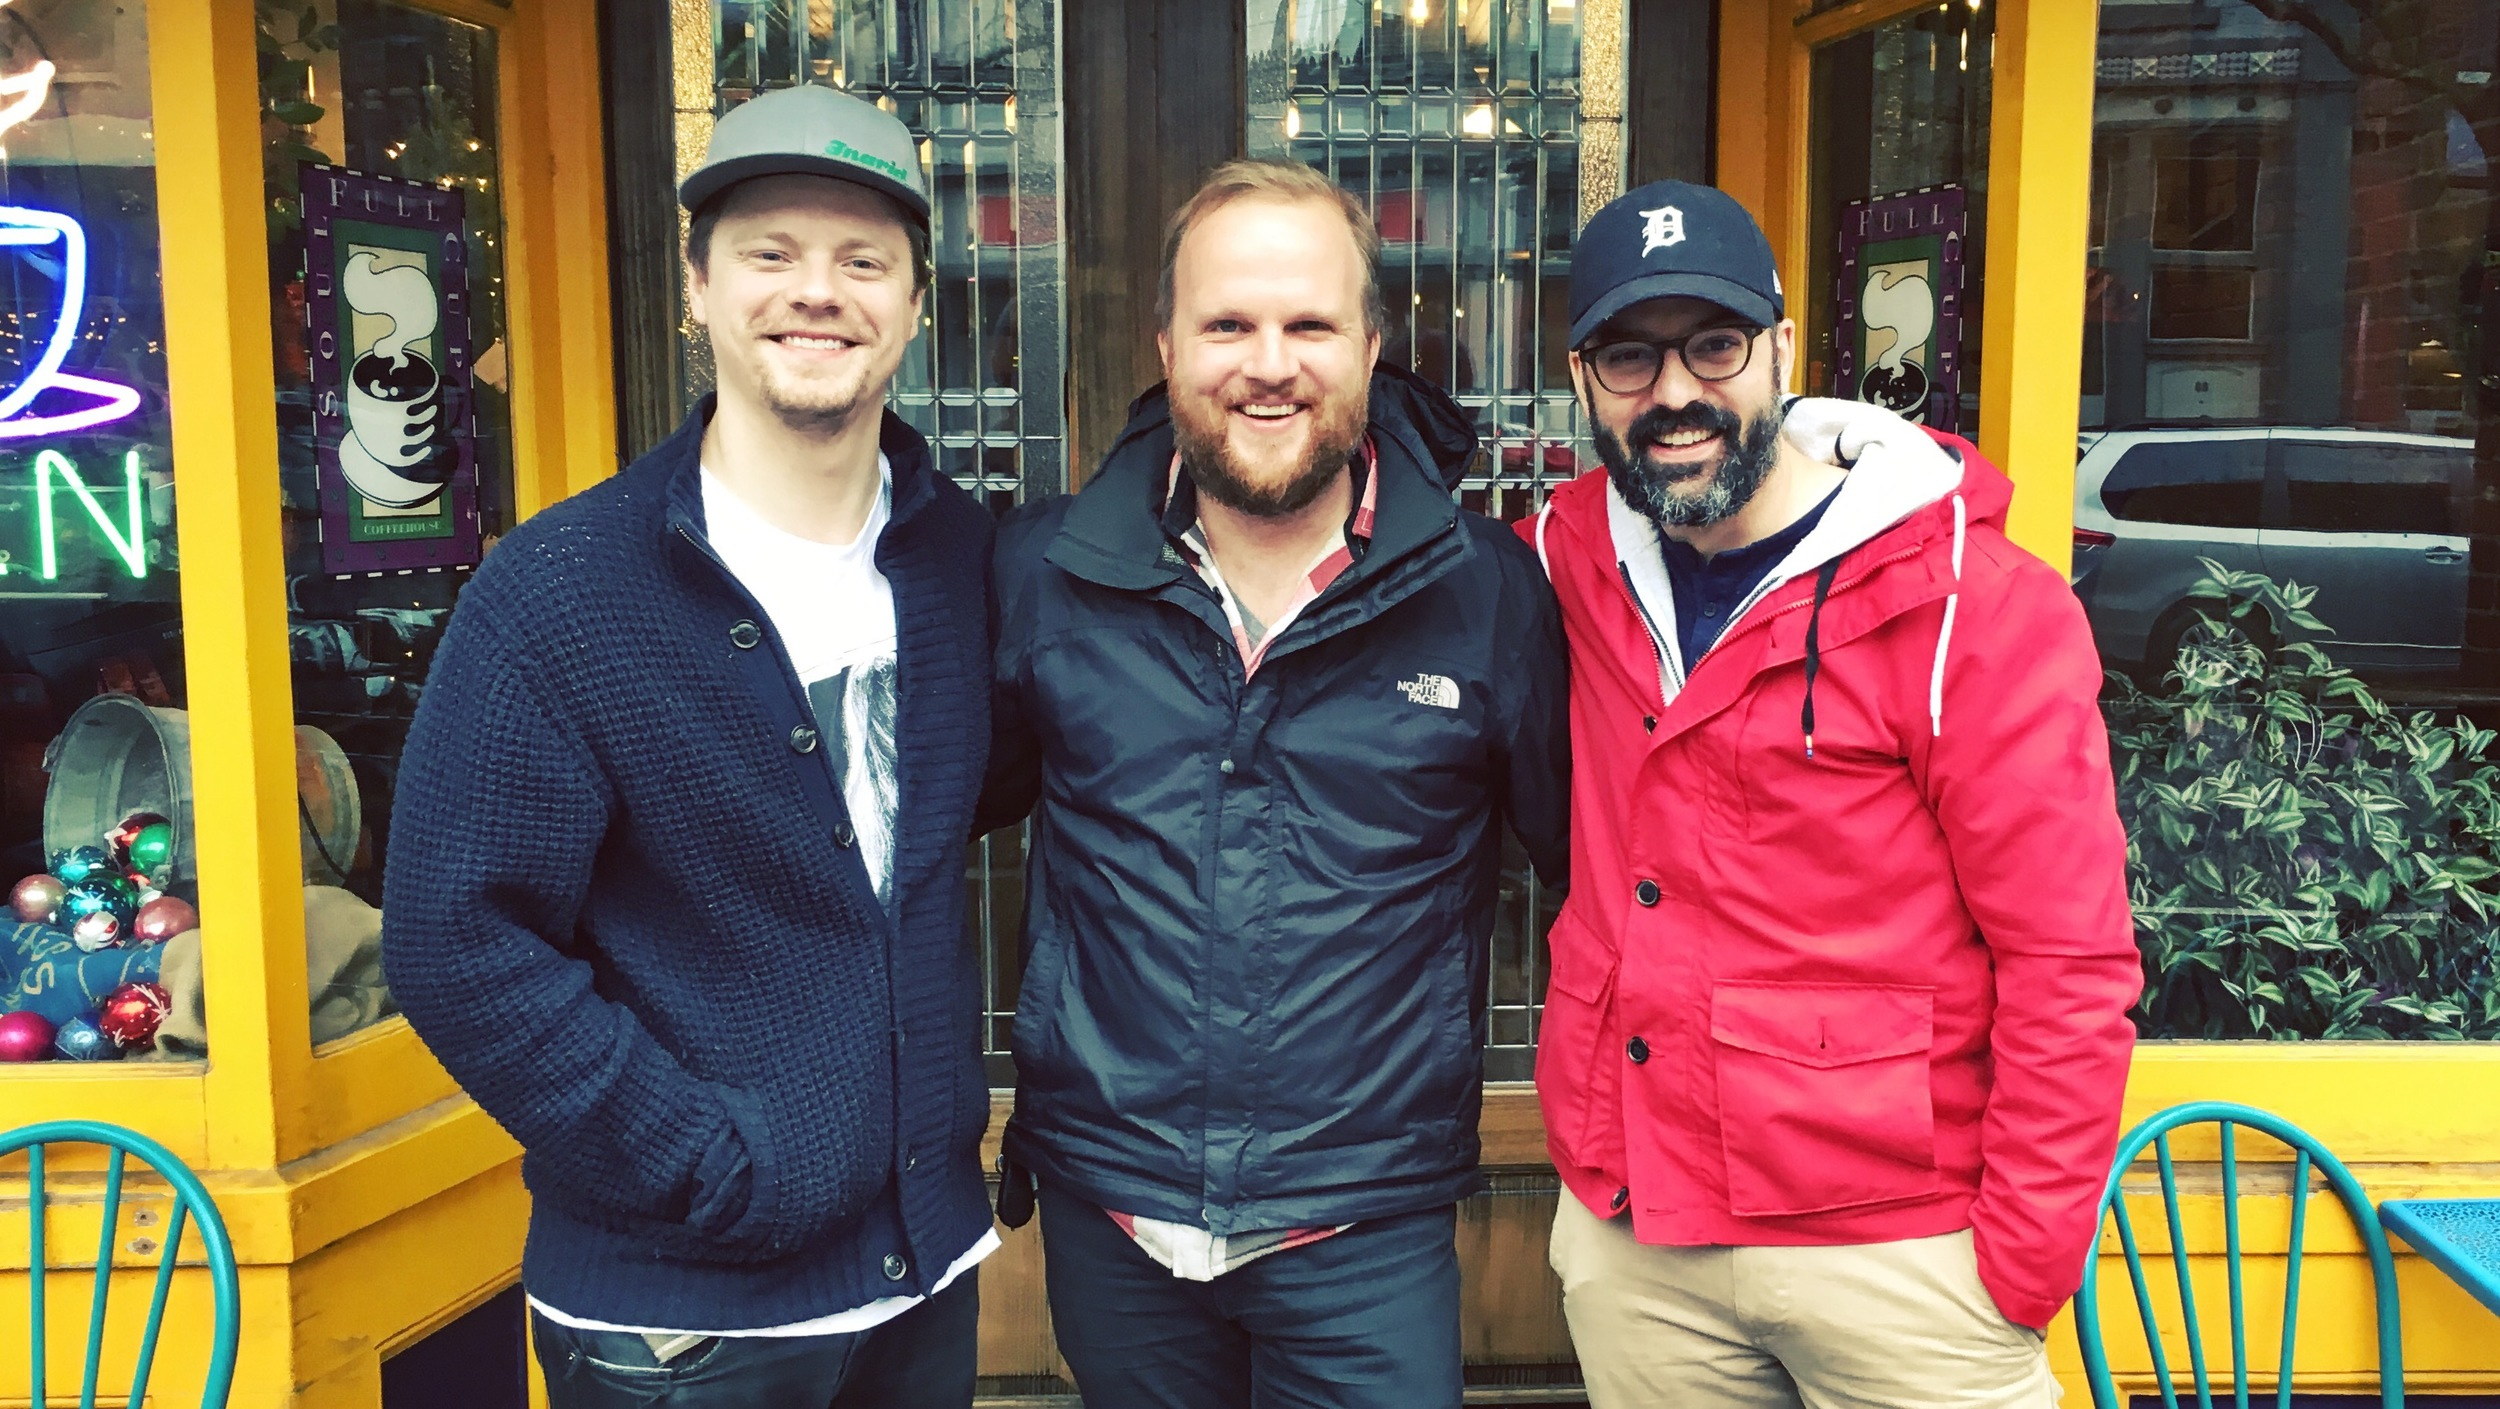 """The 2016 Empire State Filmmaker Award honorees for """"Here Alone"""" (from left): Noah Lang, Producer; Rod Blackhurst, Director/Producer, and David Ebeltoft, Writer/Producer."""